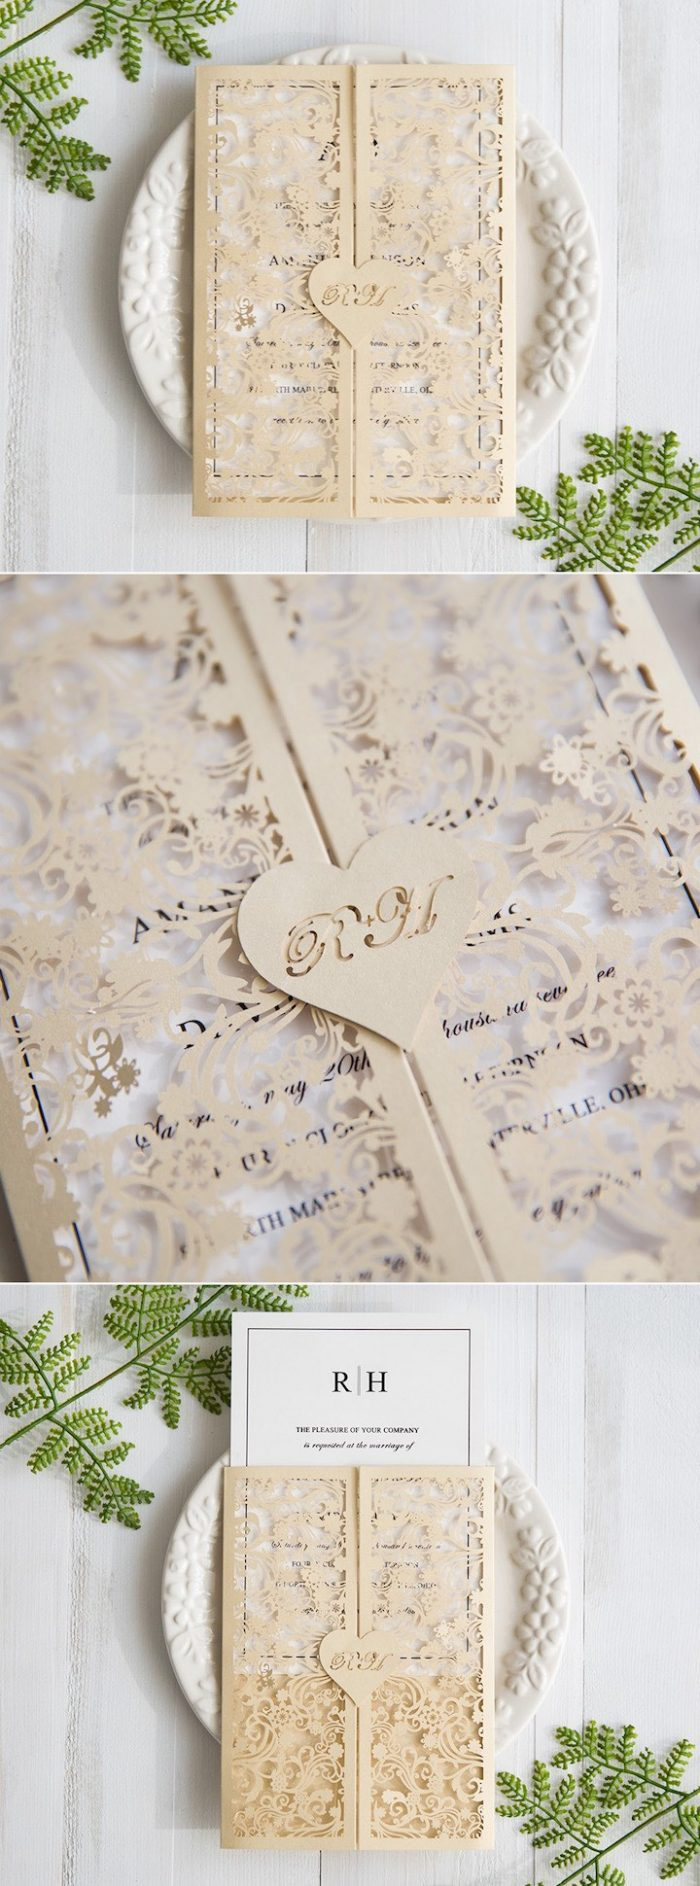 paper cut-out wedding invitation